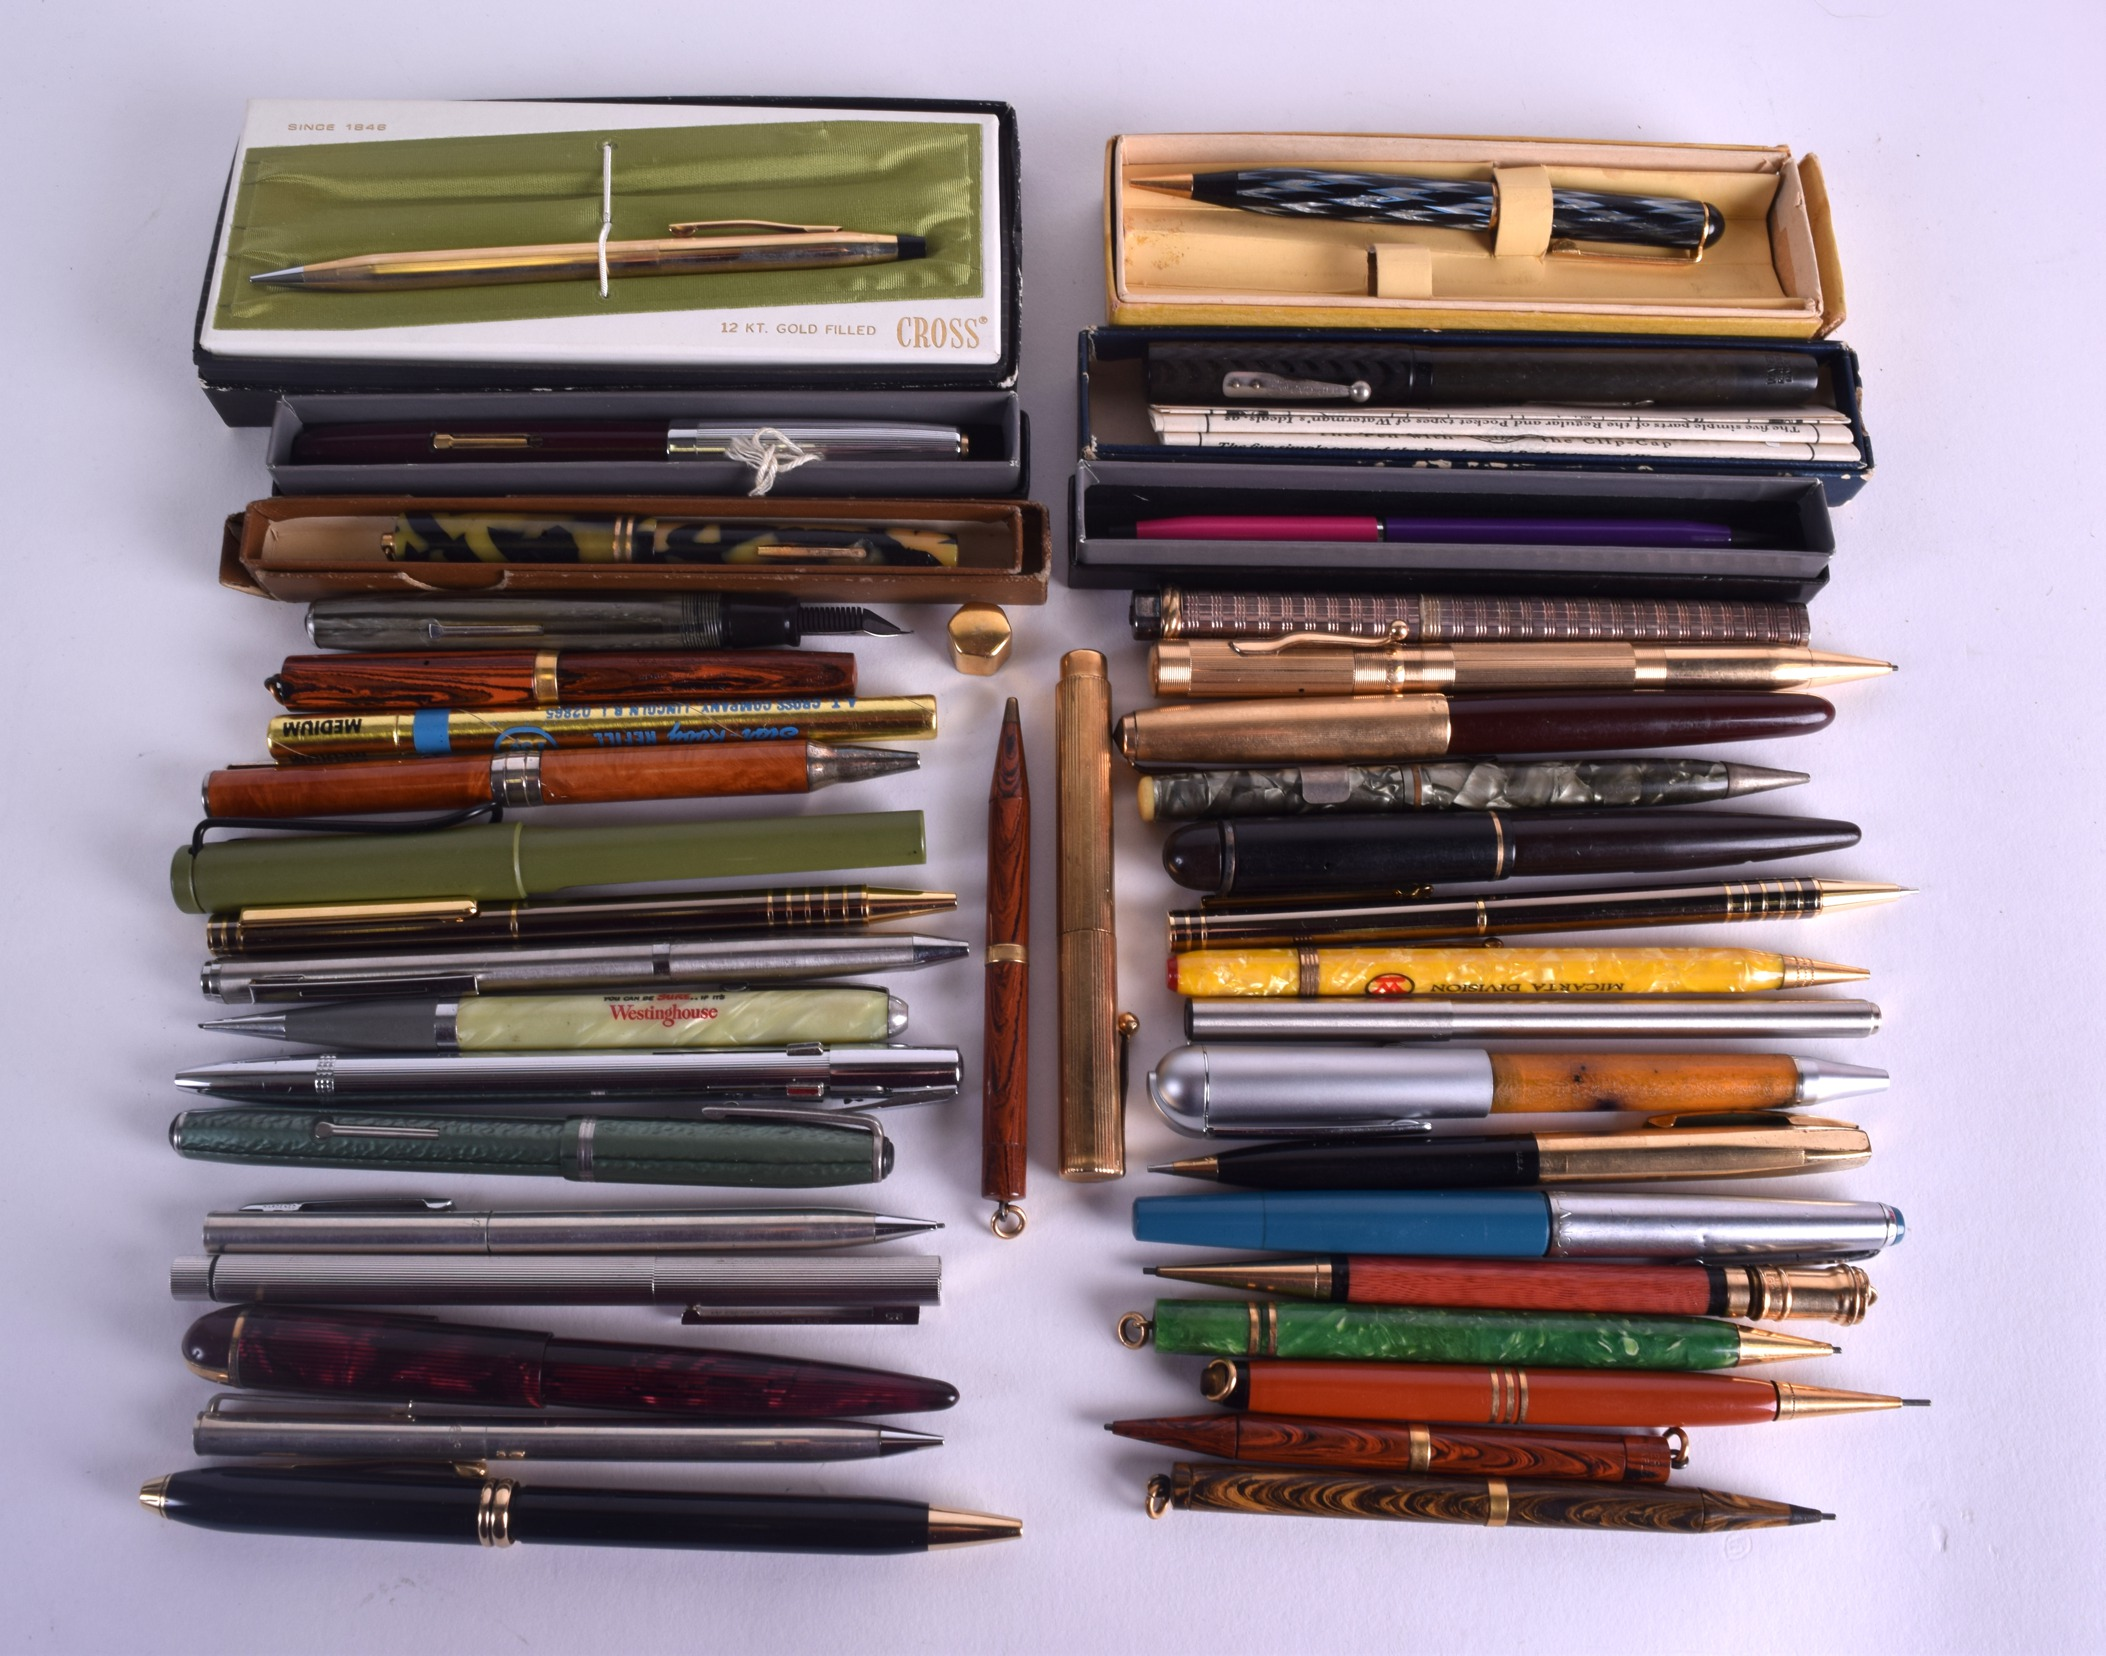 Lot 873 - A COLLECTION OF VINTAGE PENS including Cartier, Cross, Imperial etc. (39)